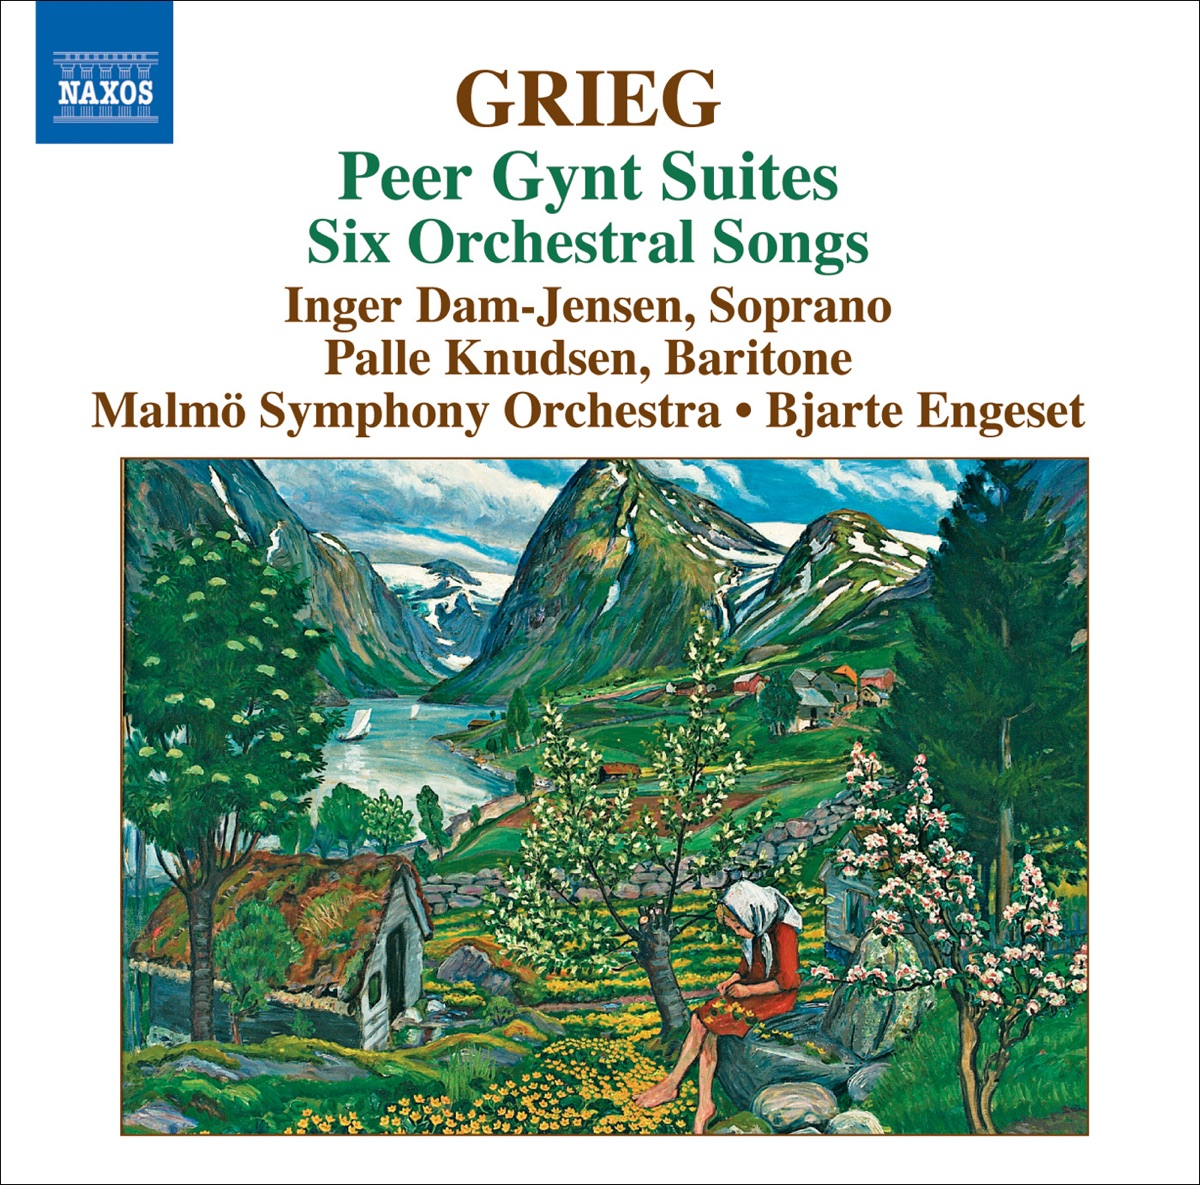 Greig Peer Gynt Suites Six Orchestrated Songs Bjarte Engeset Inger Dam-Jensen Malmö Symphony Orchestra  Palle Knudsen CD cover